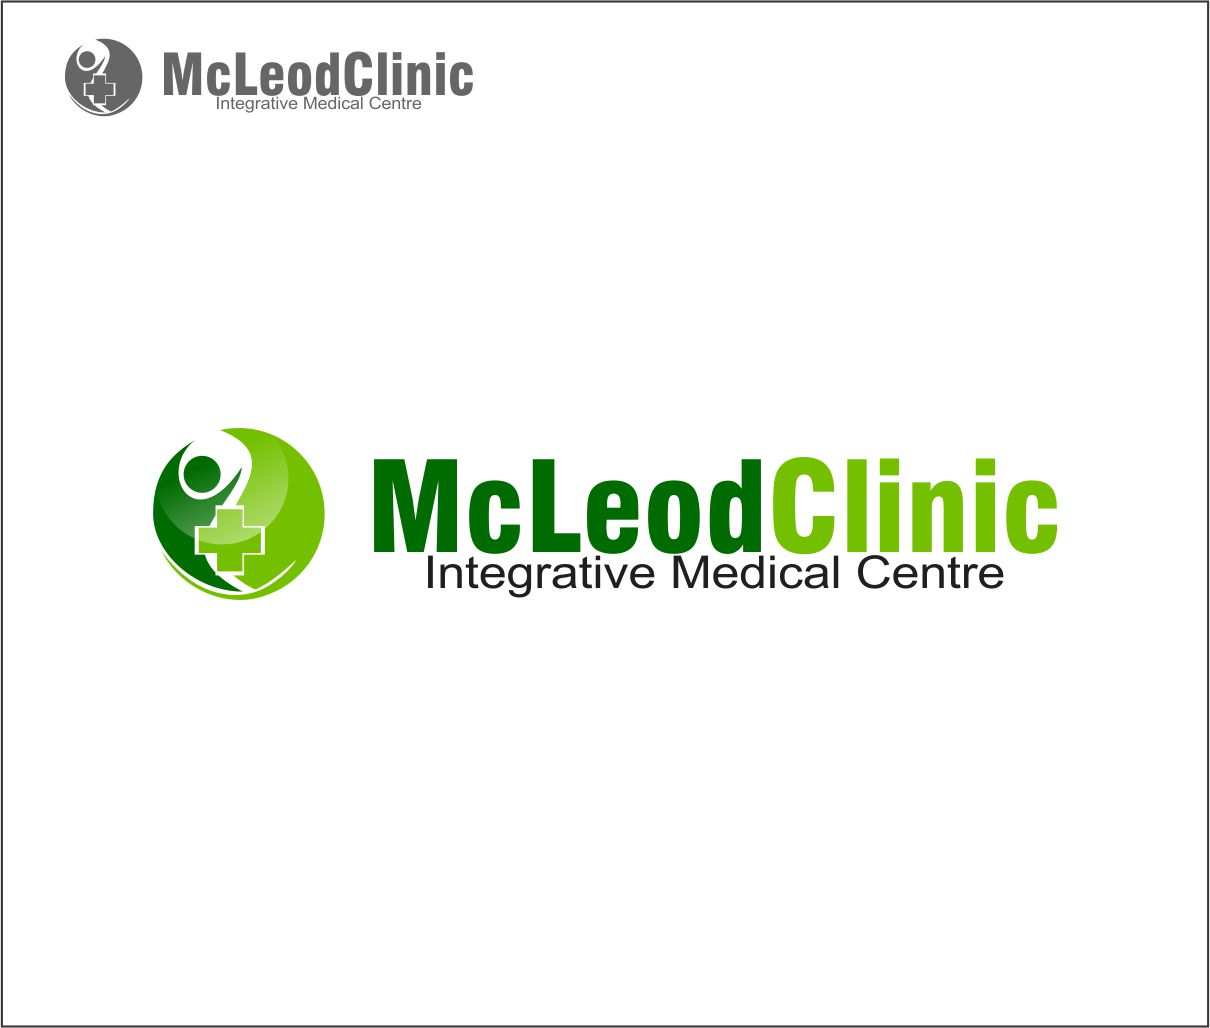 Logo Design by Agus Martoyo - Entry No. 62 in the Logo Design Contest Creative Logo Design for McLeod Clinic.